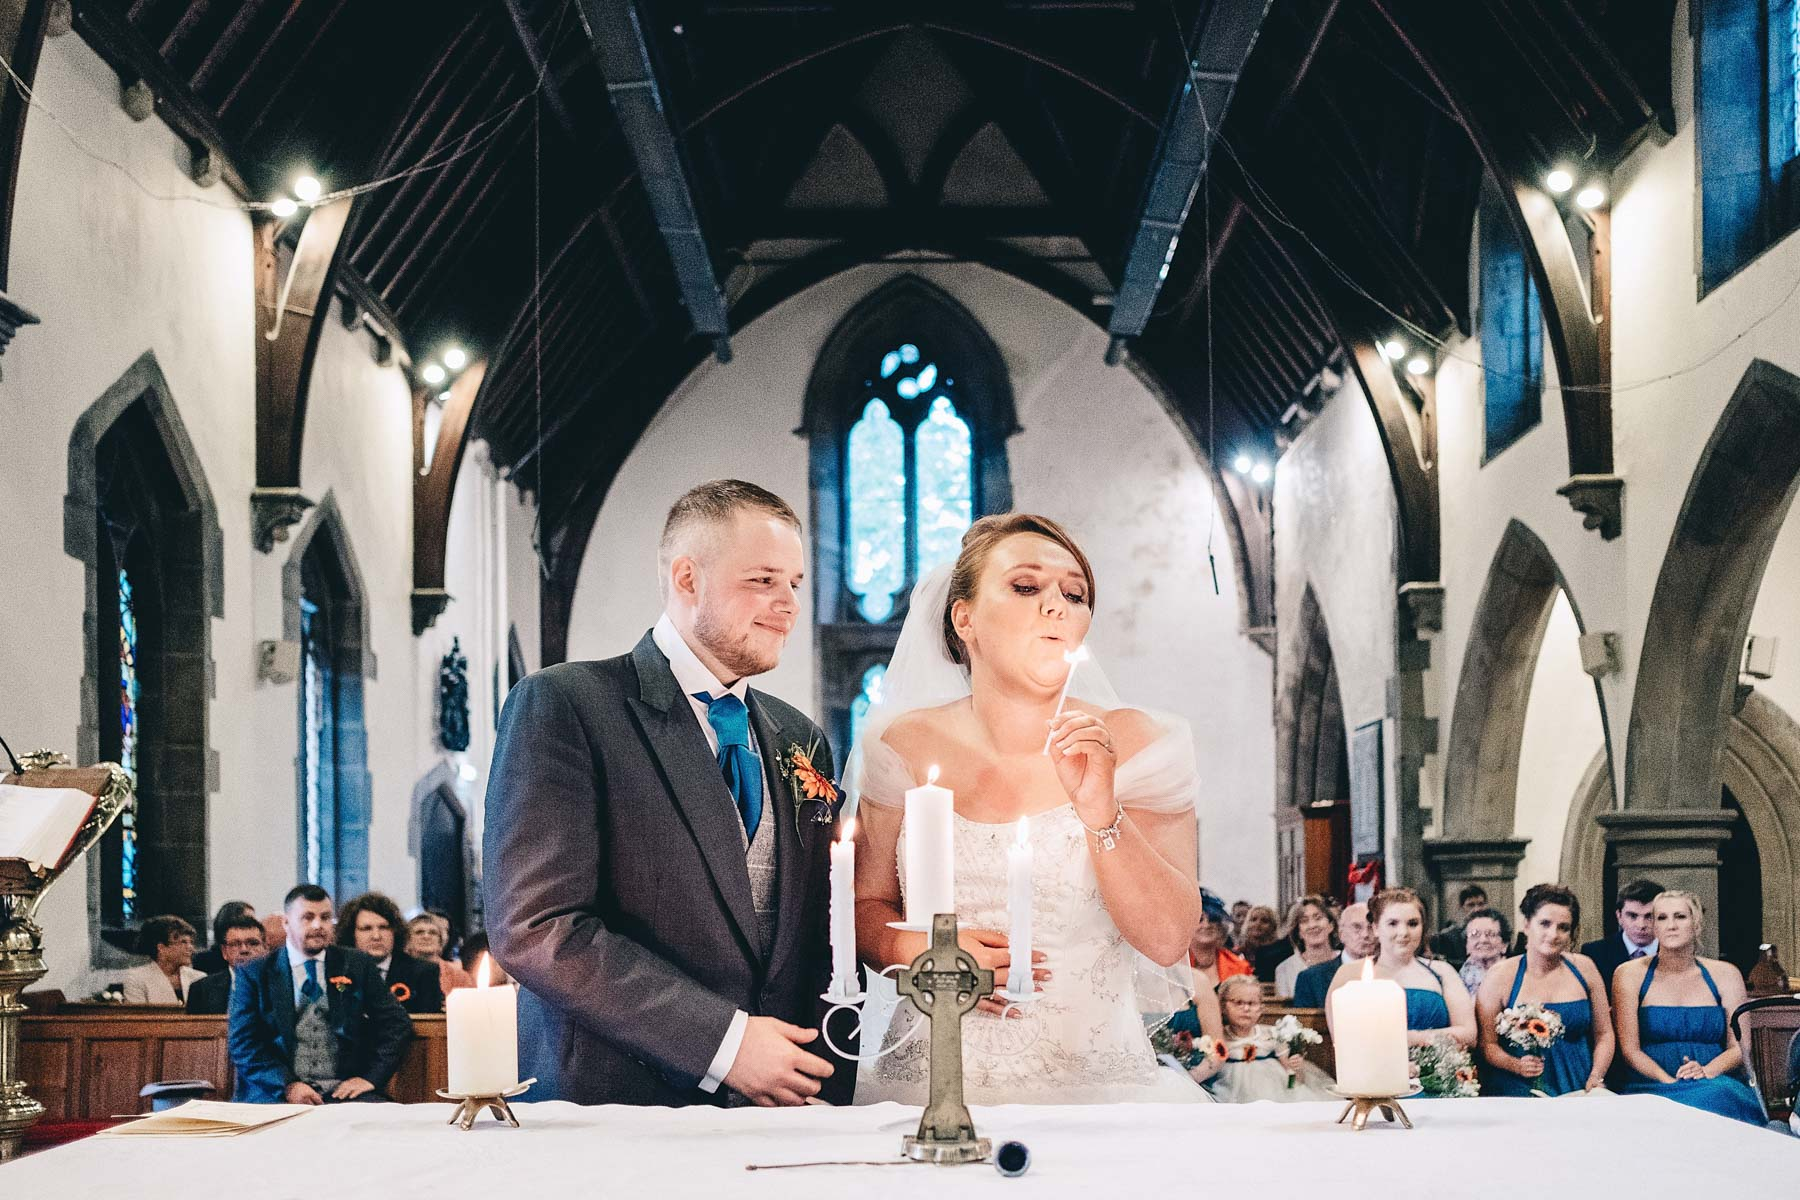 Bride blows out candle